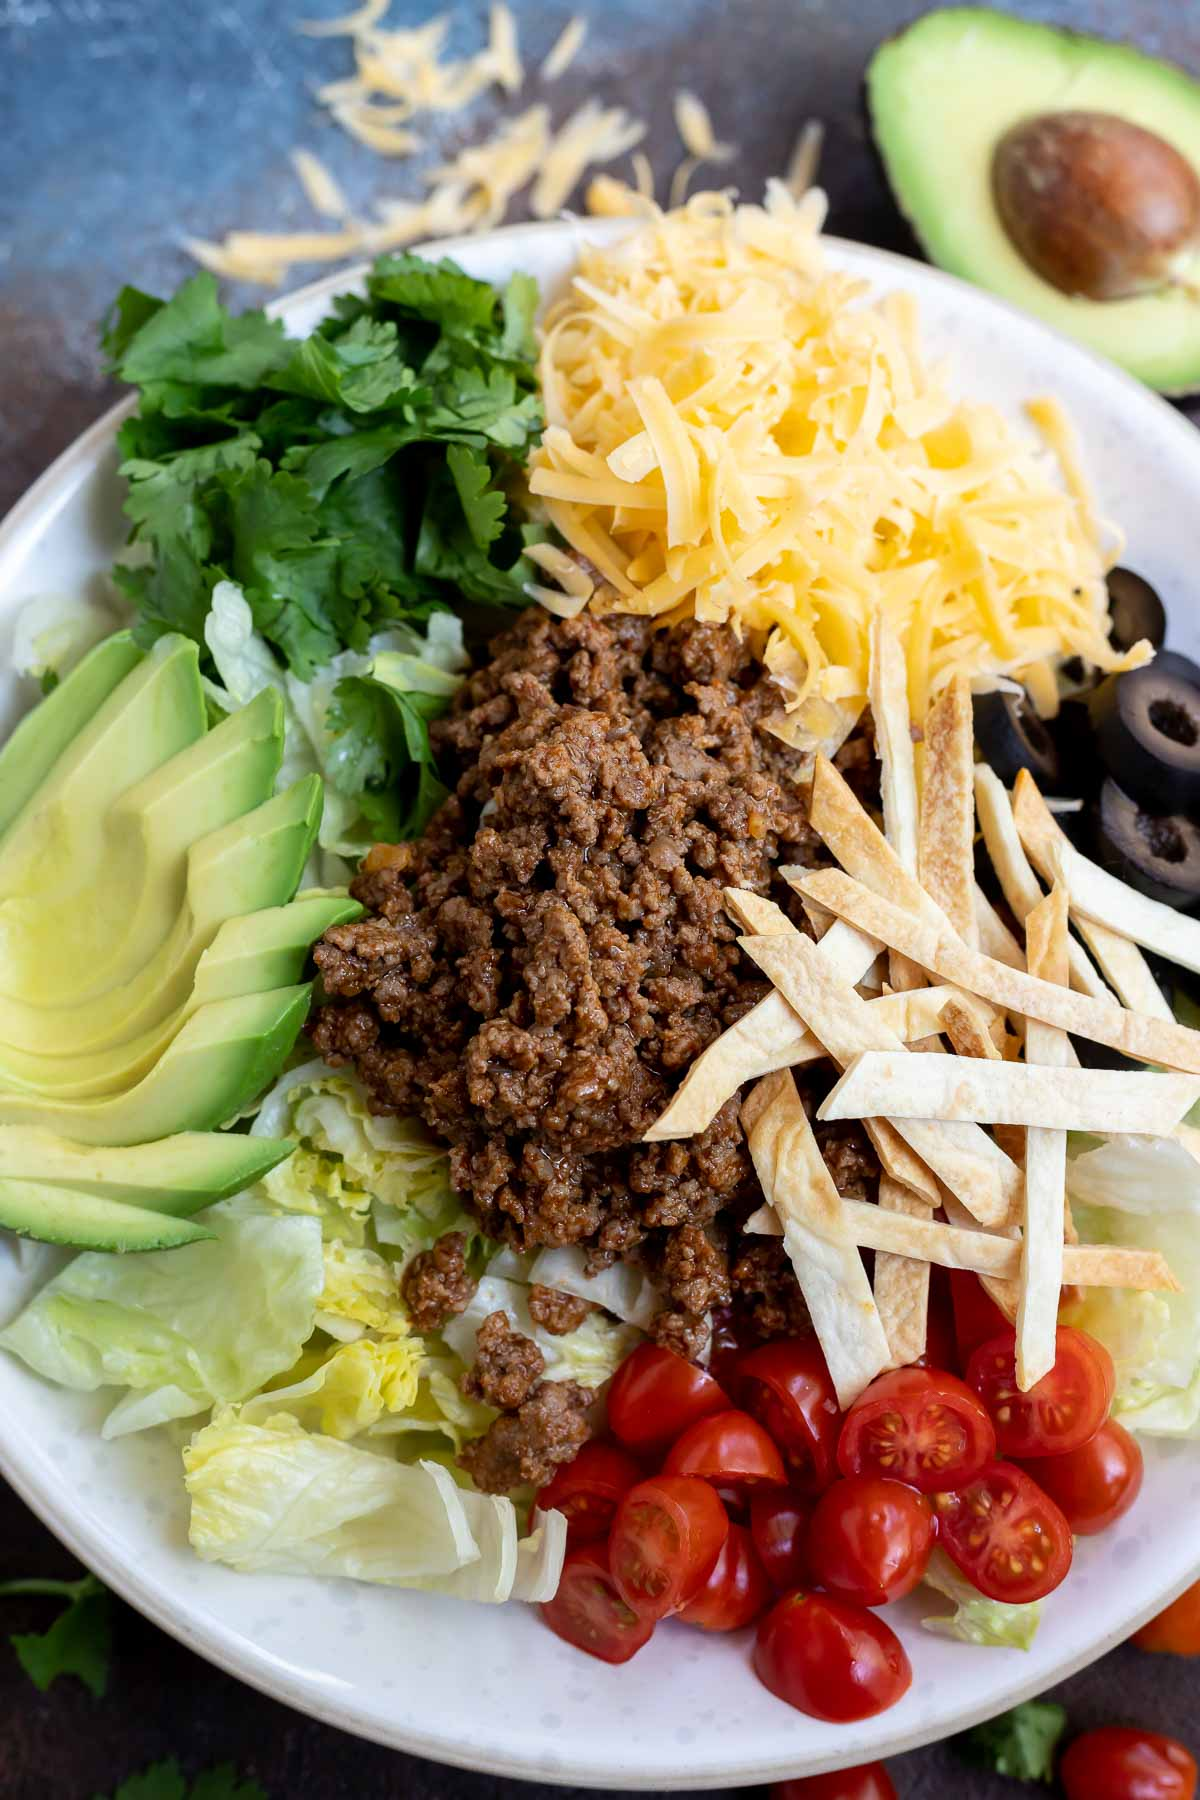 taco salad ingredients arranged in white bowl, not yet mixed